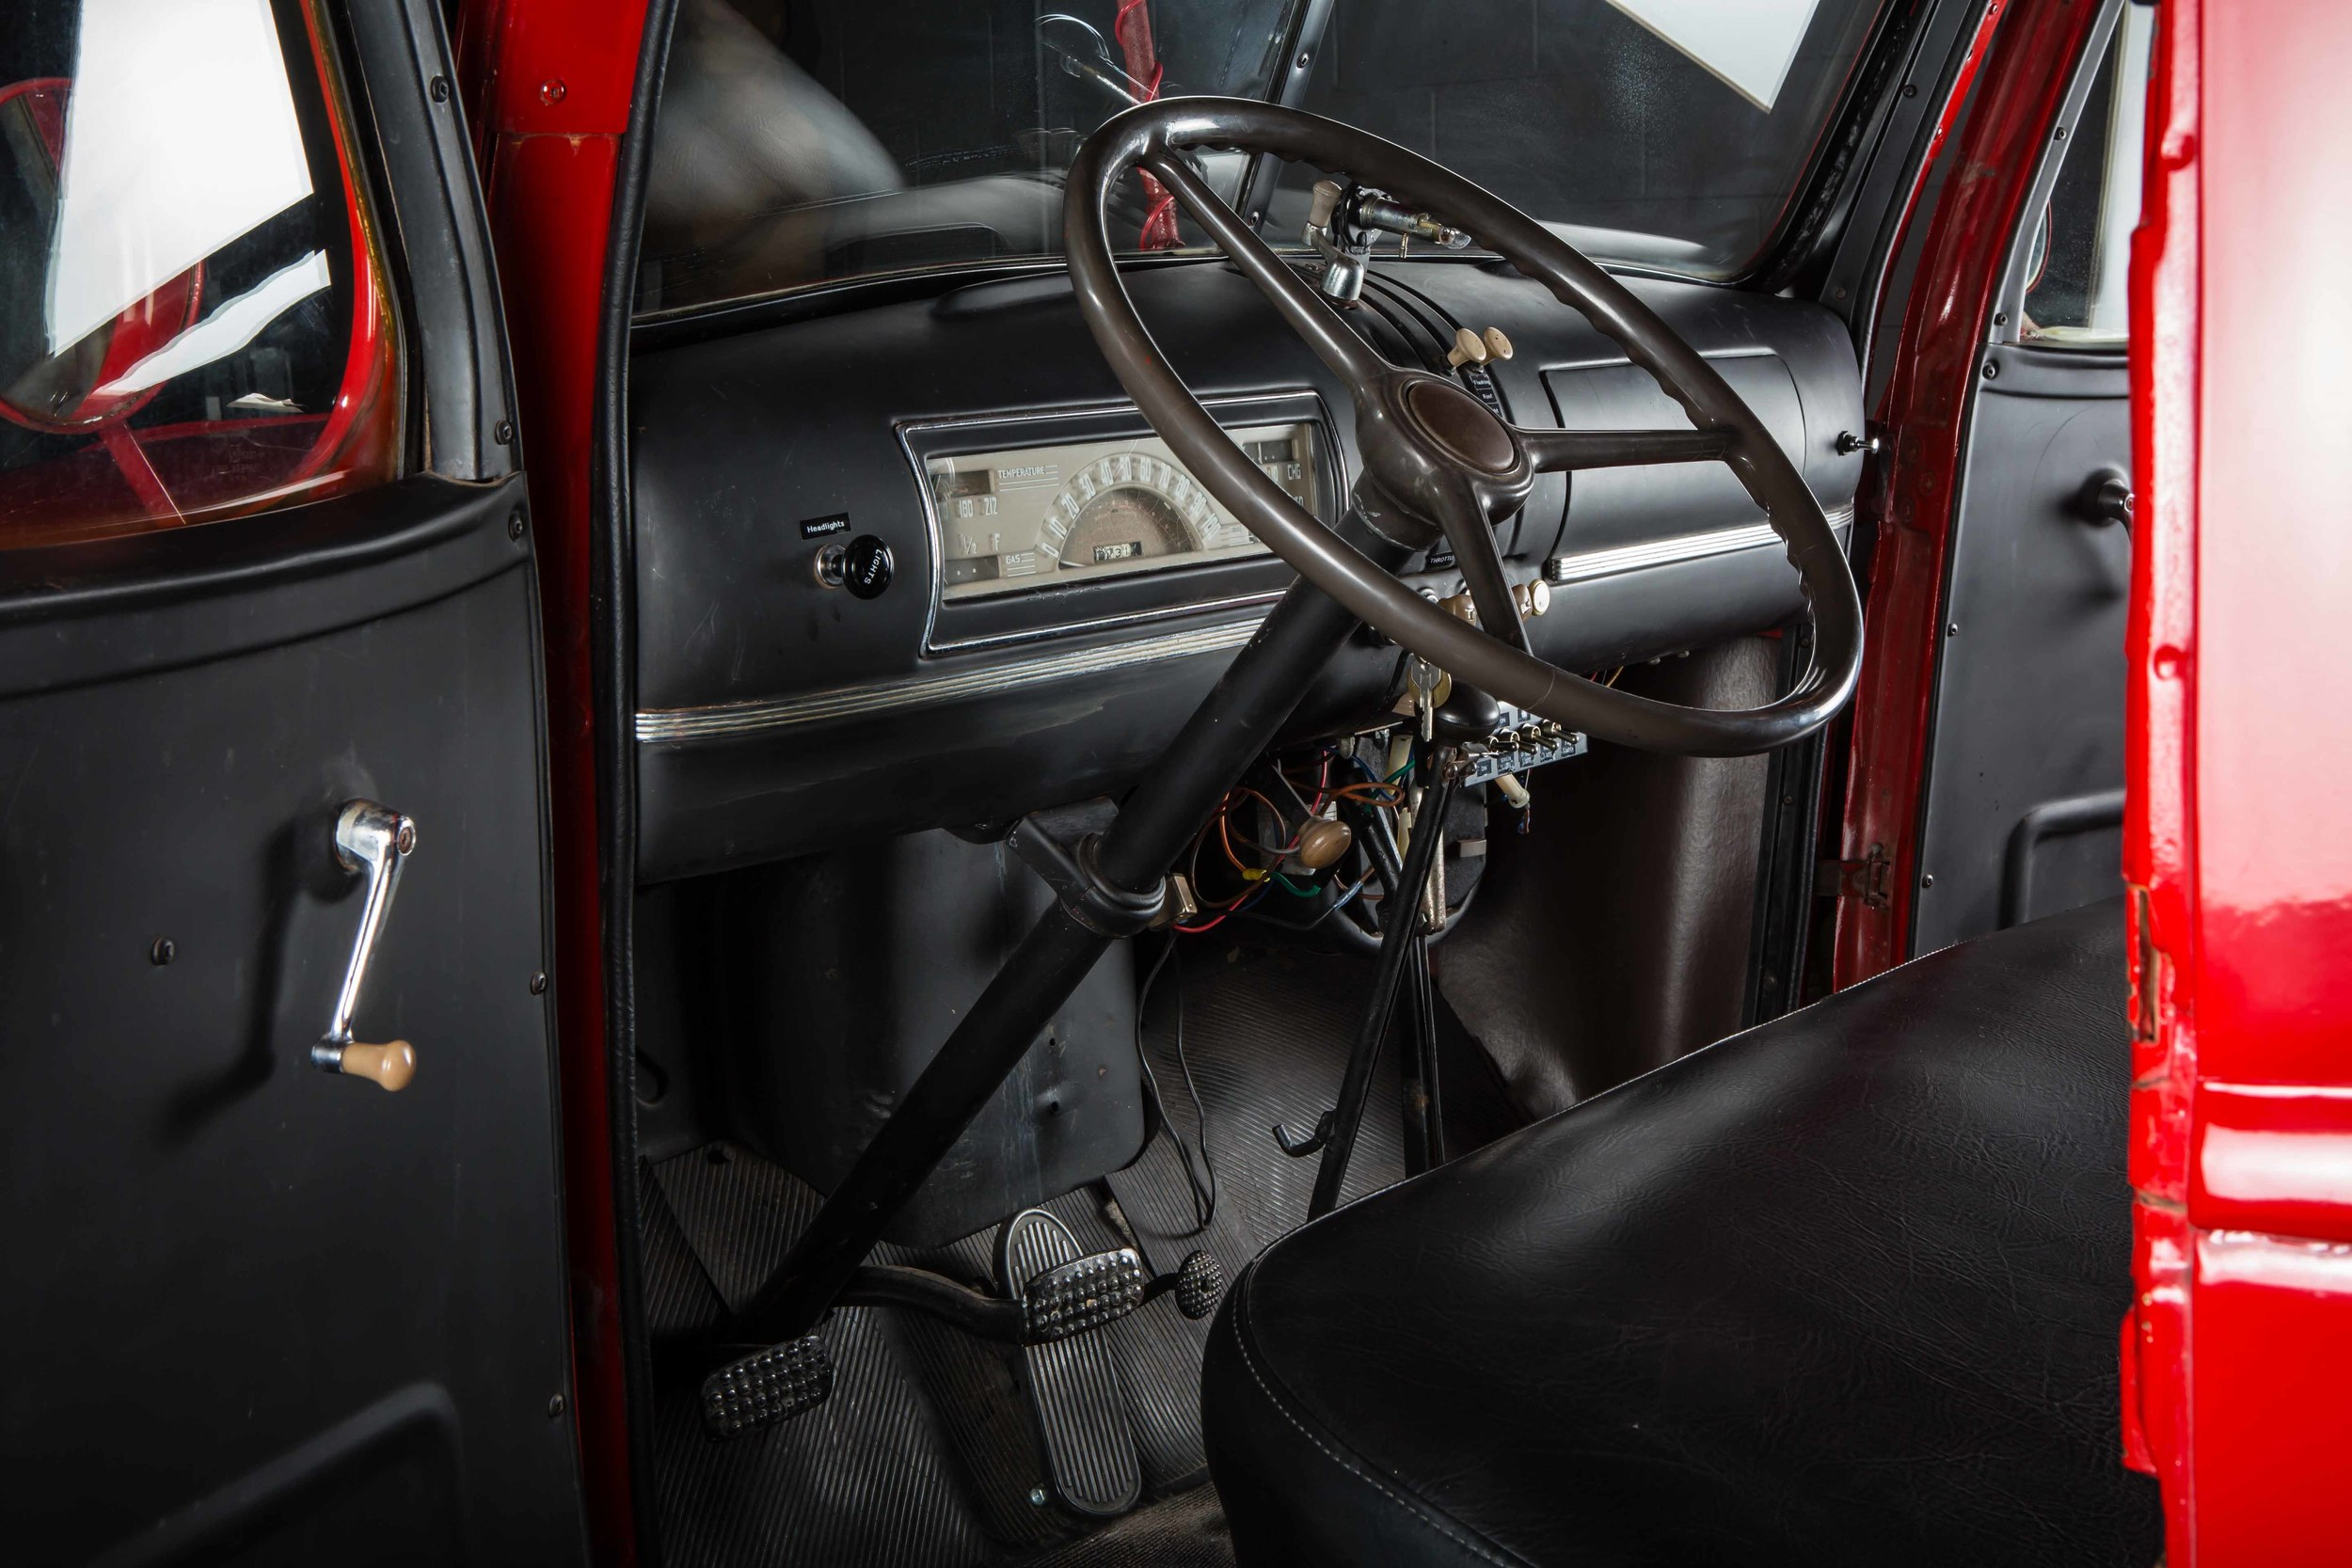 Anaheim Rod and Custom Fire Truck Project-16.jpg